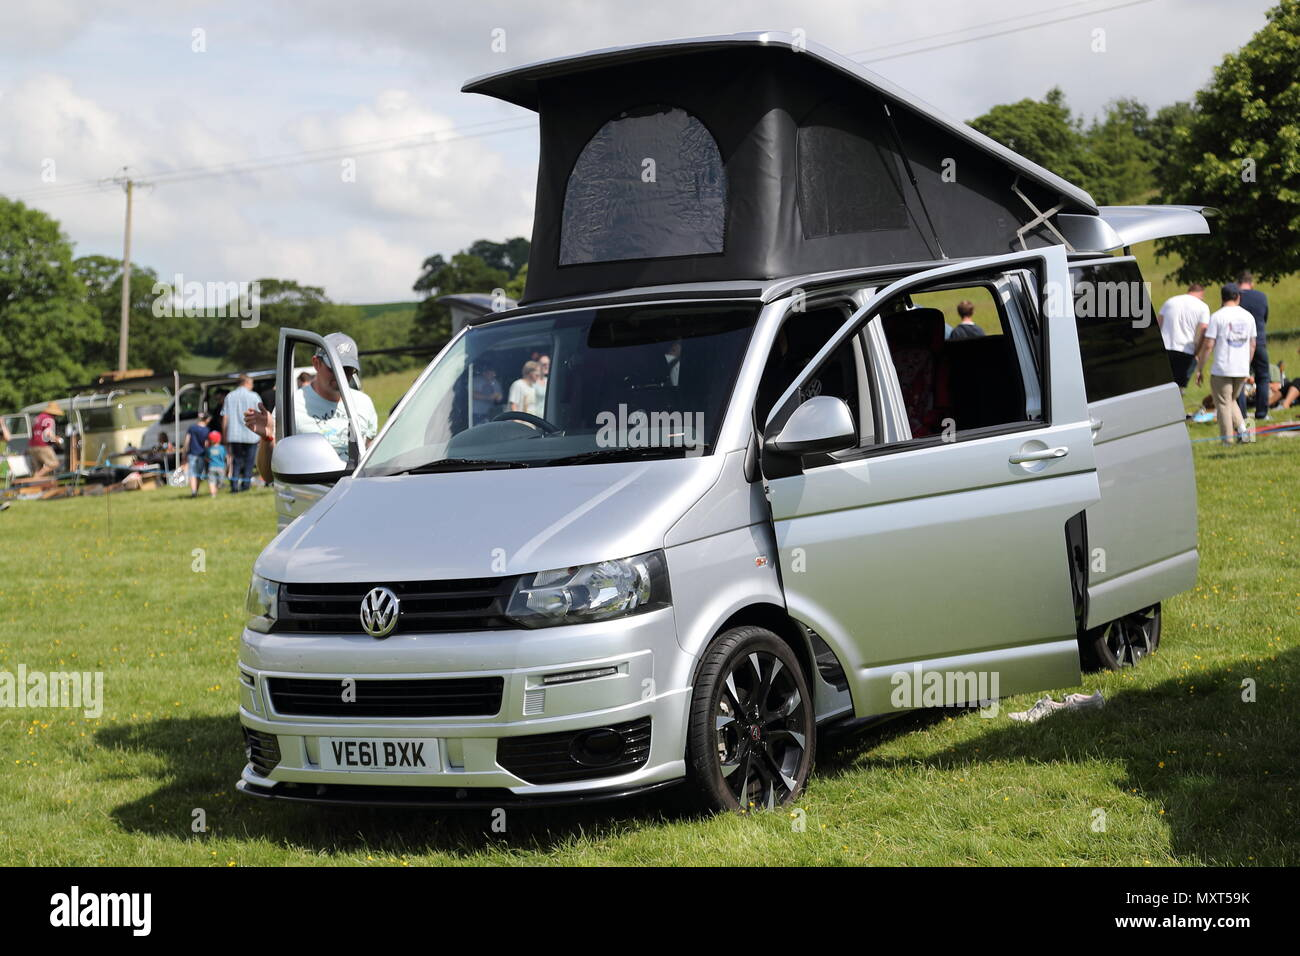 All Types Of Cars >> All Types Of Historic Volkswagen Cars And Vans Were Displayed At